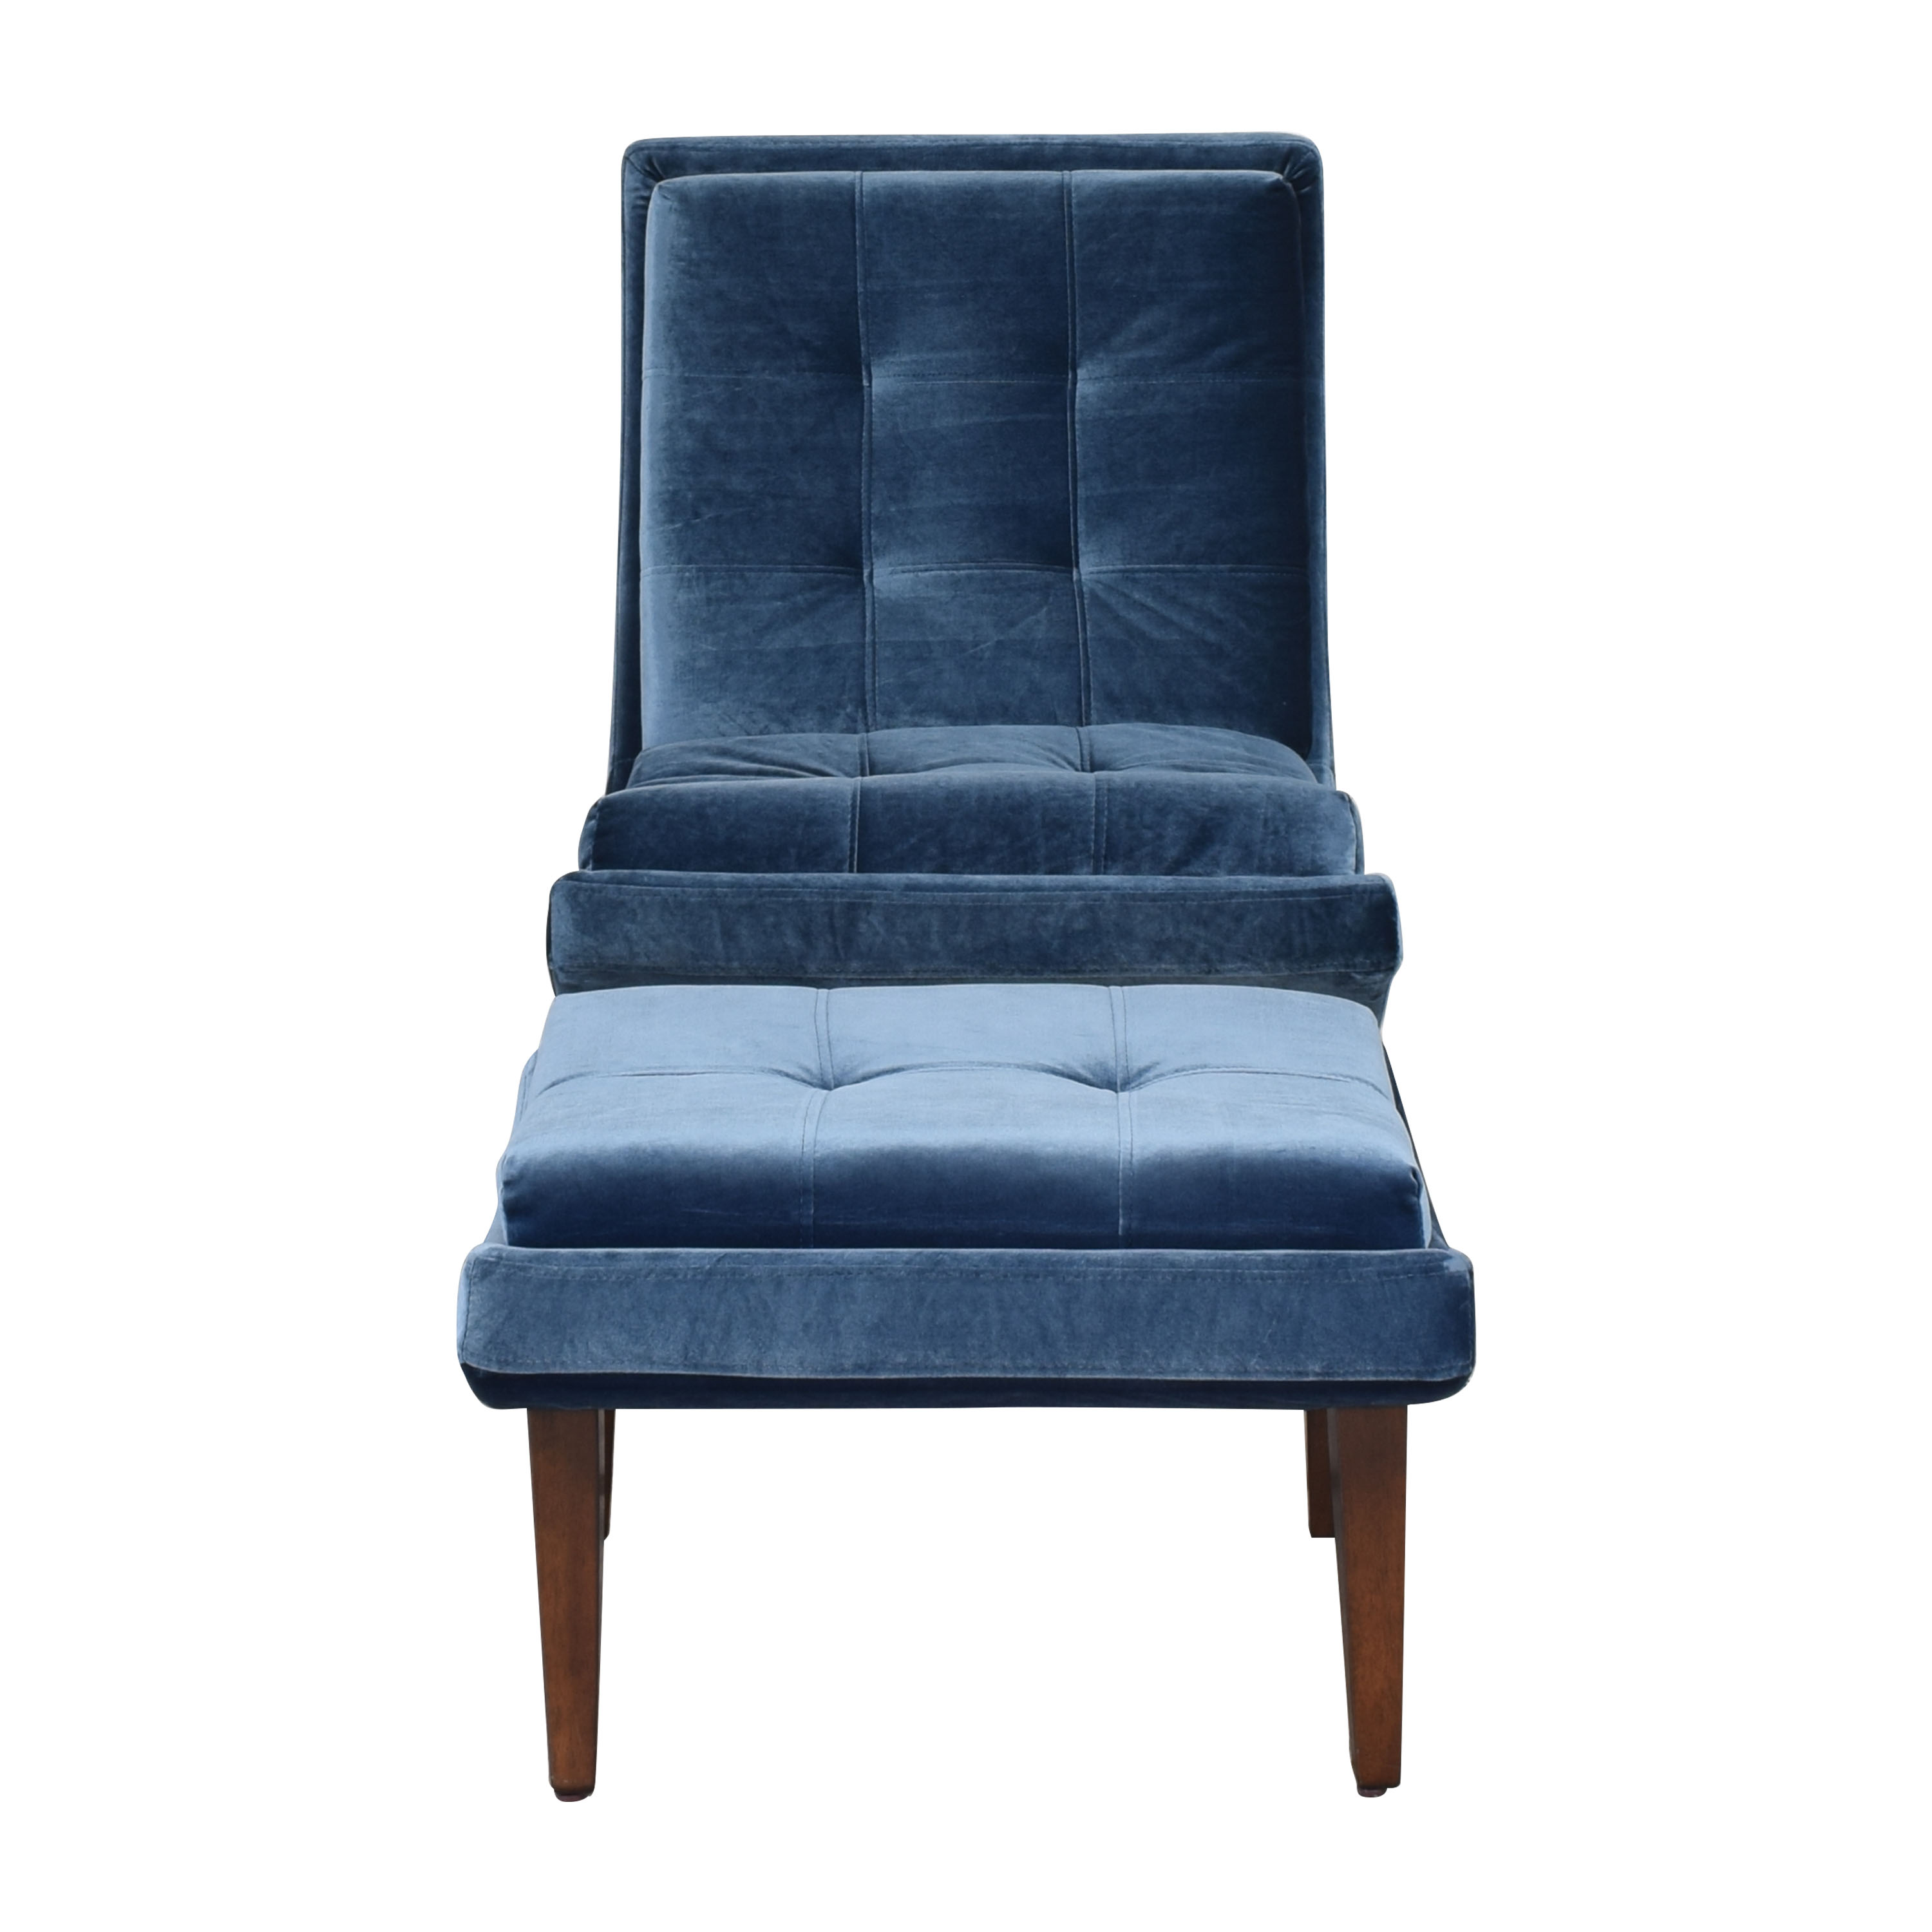 Modway Lounge Chair and Ottoman sale